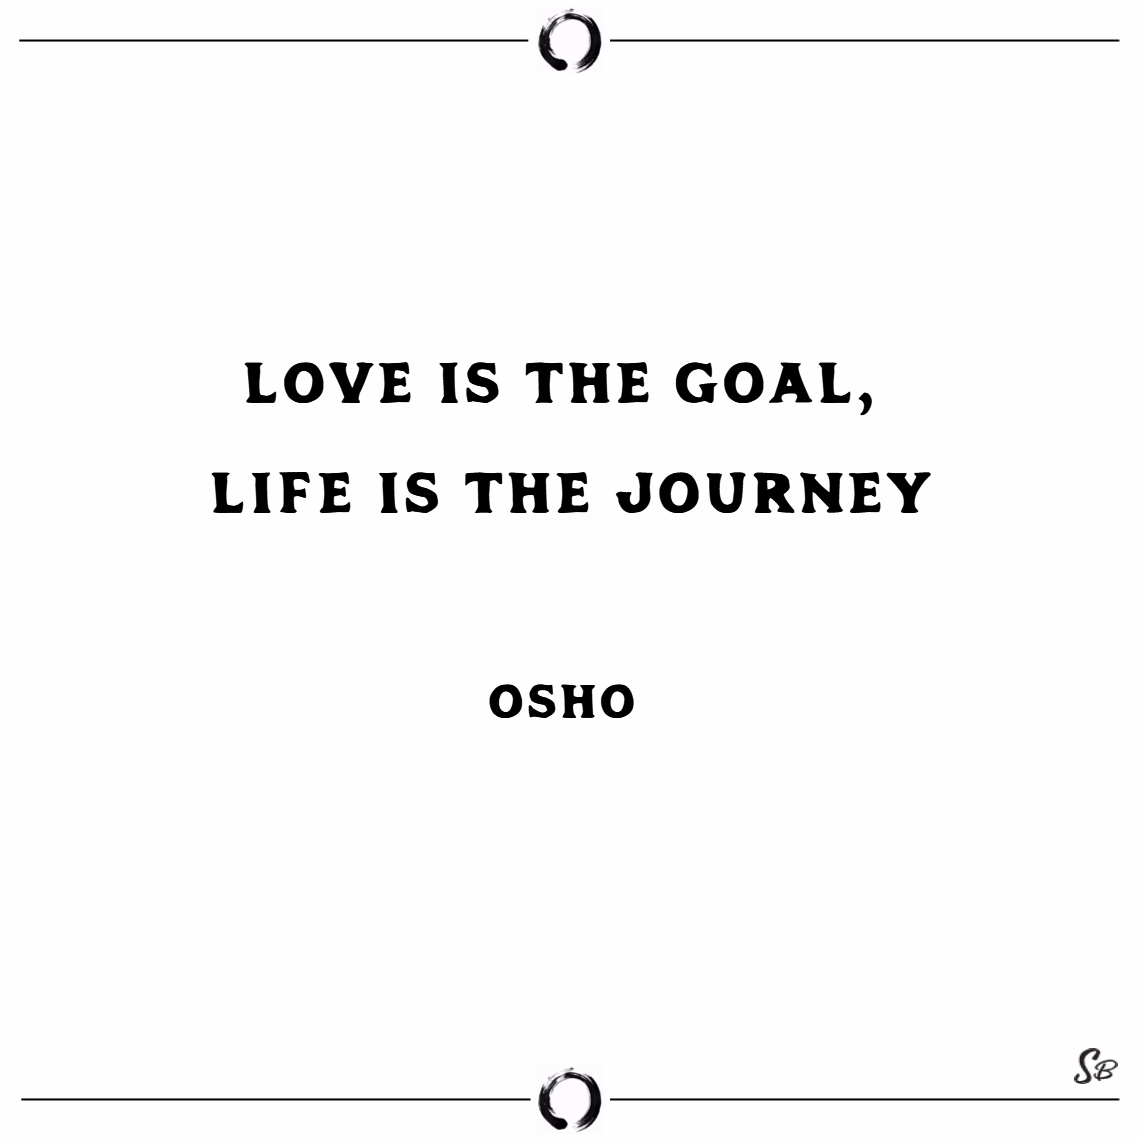 Love is the goal, life is the journey